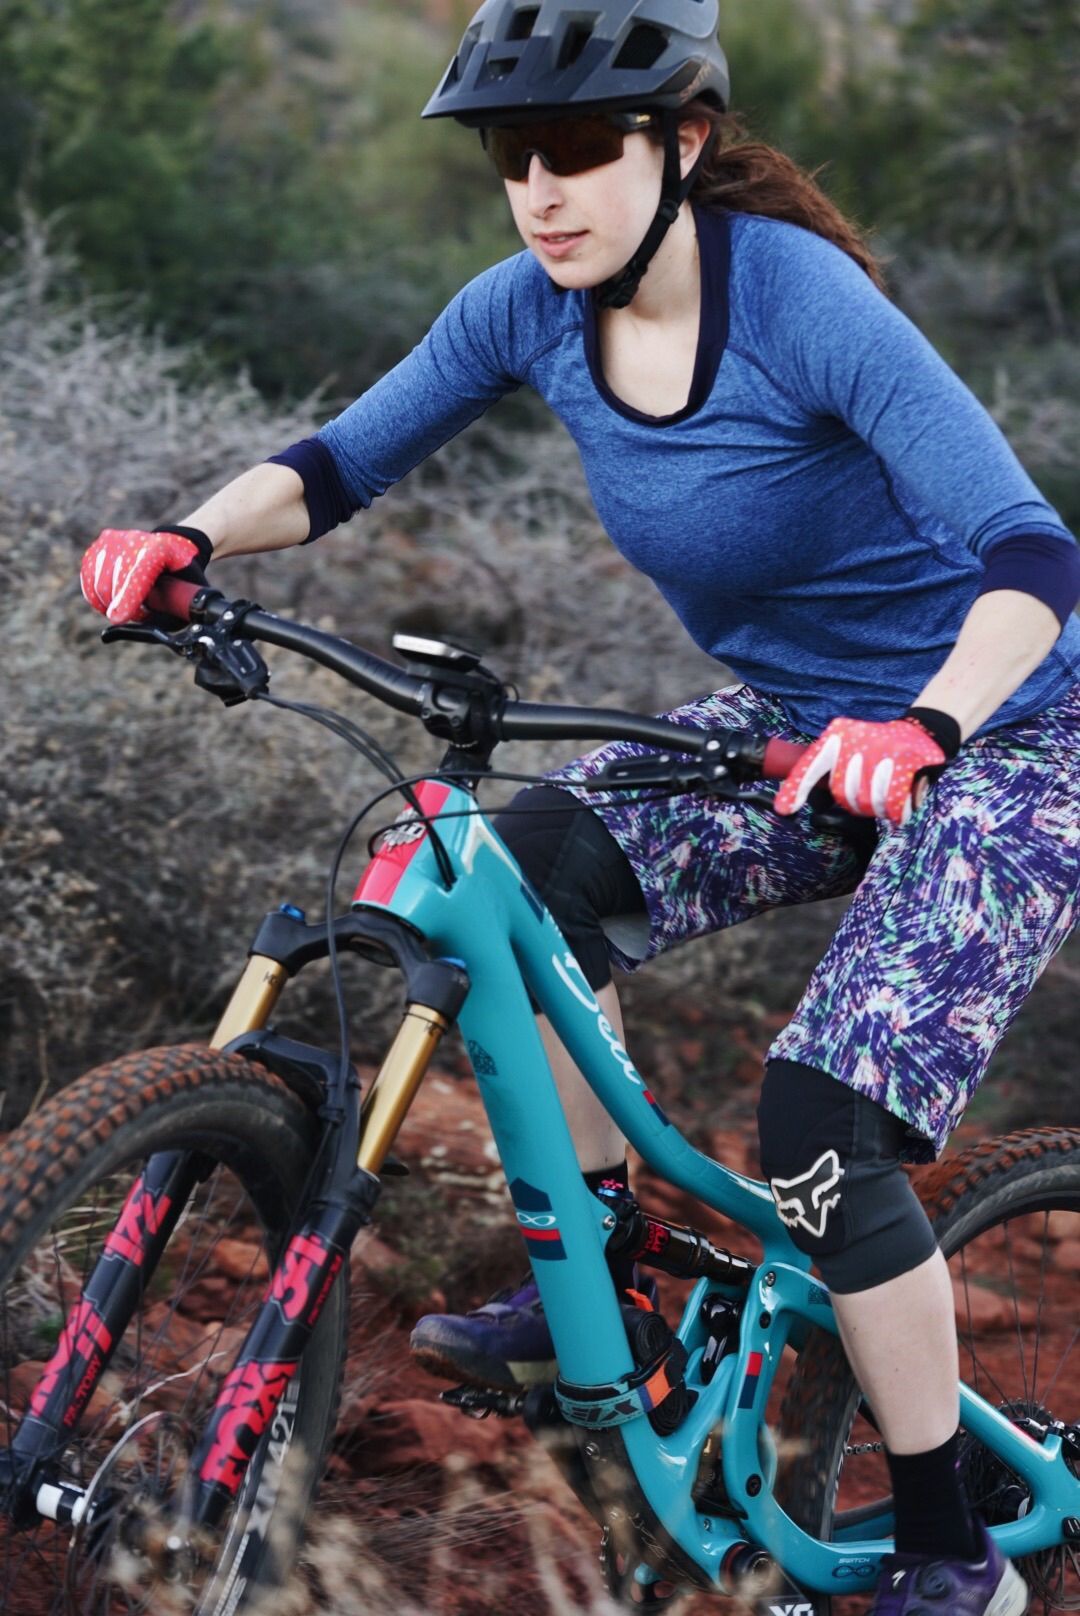 The Mtb Long The Tricia Mountain Bike Shorts Bicycle Workout